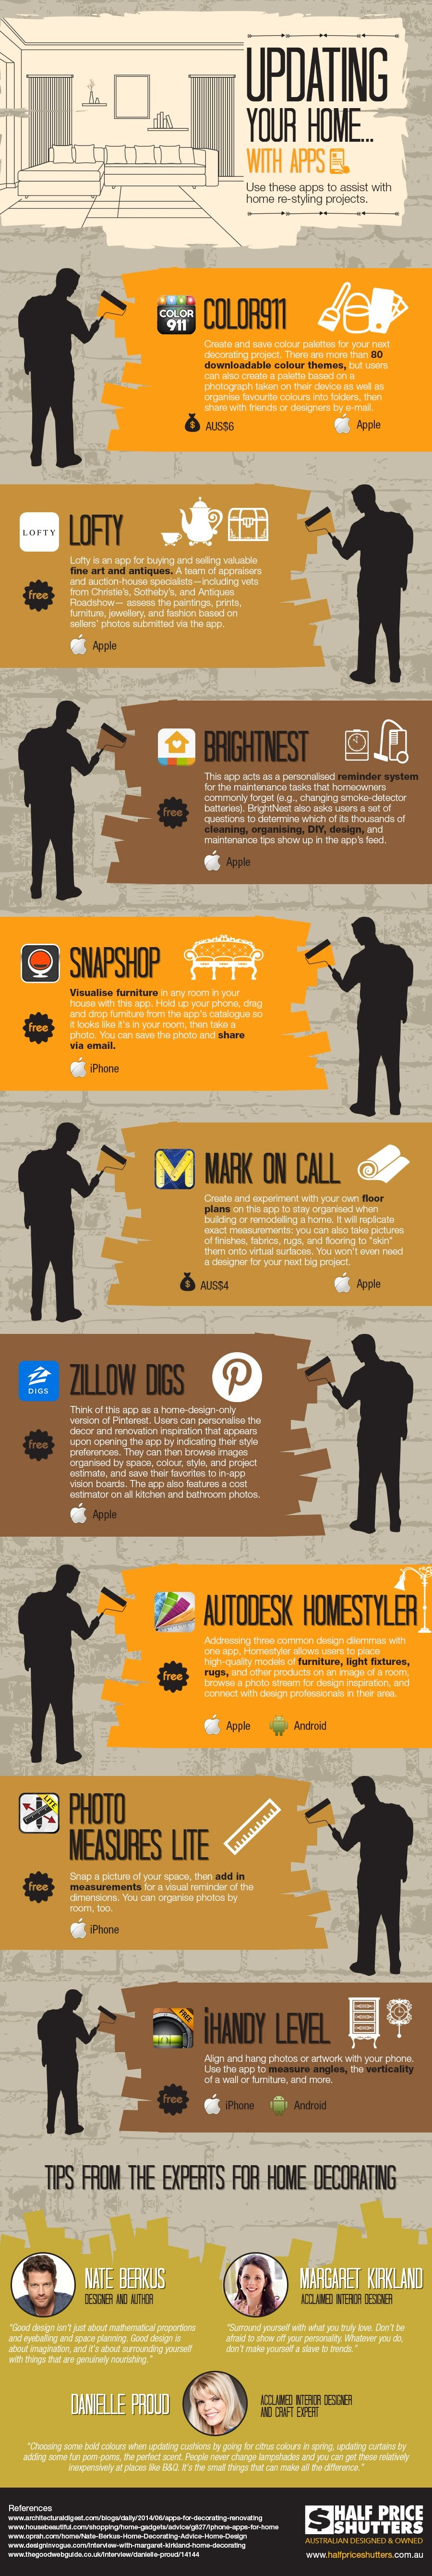 Updating Your Home With Apps #Infographic